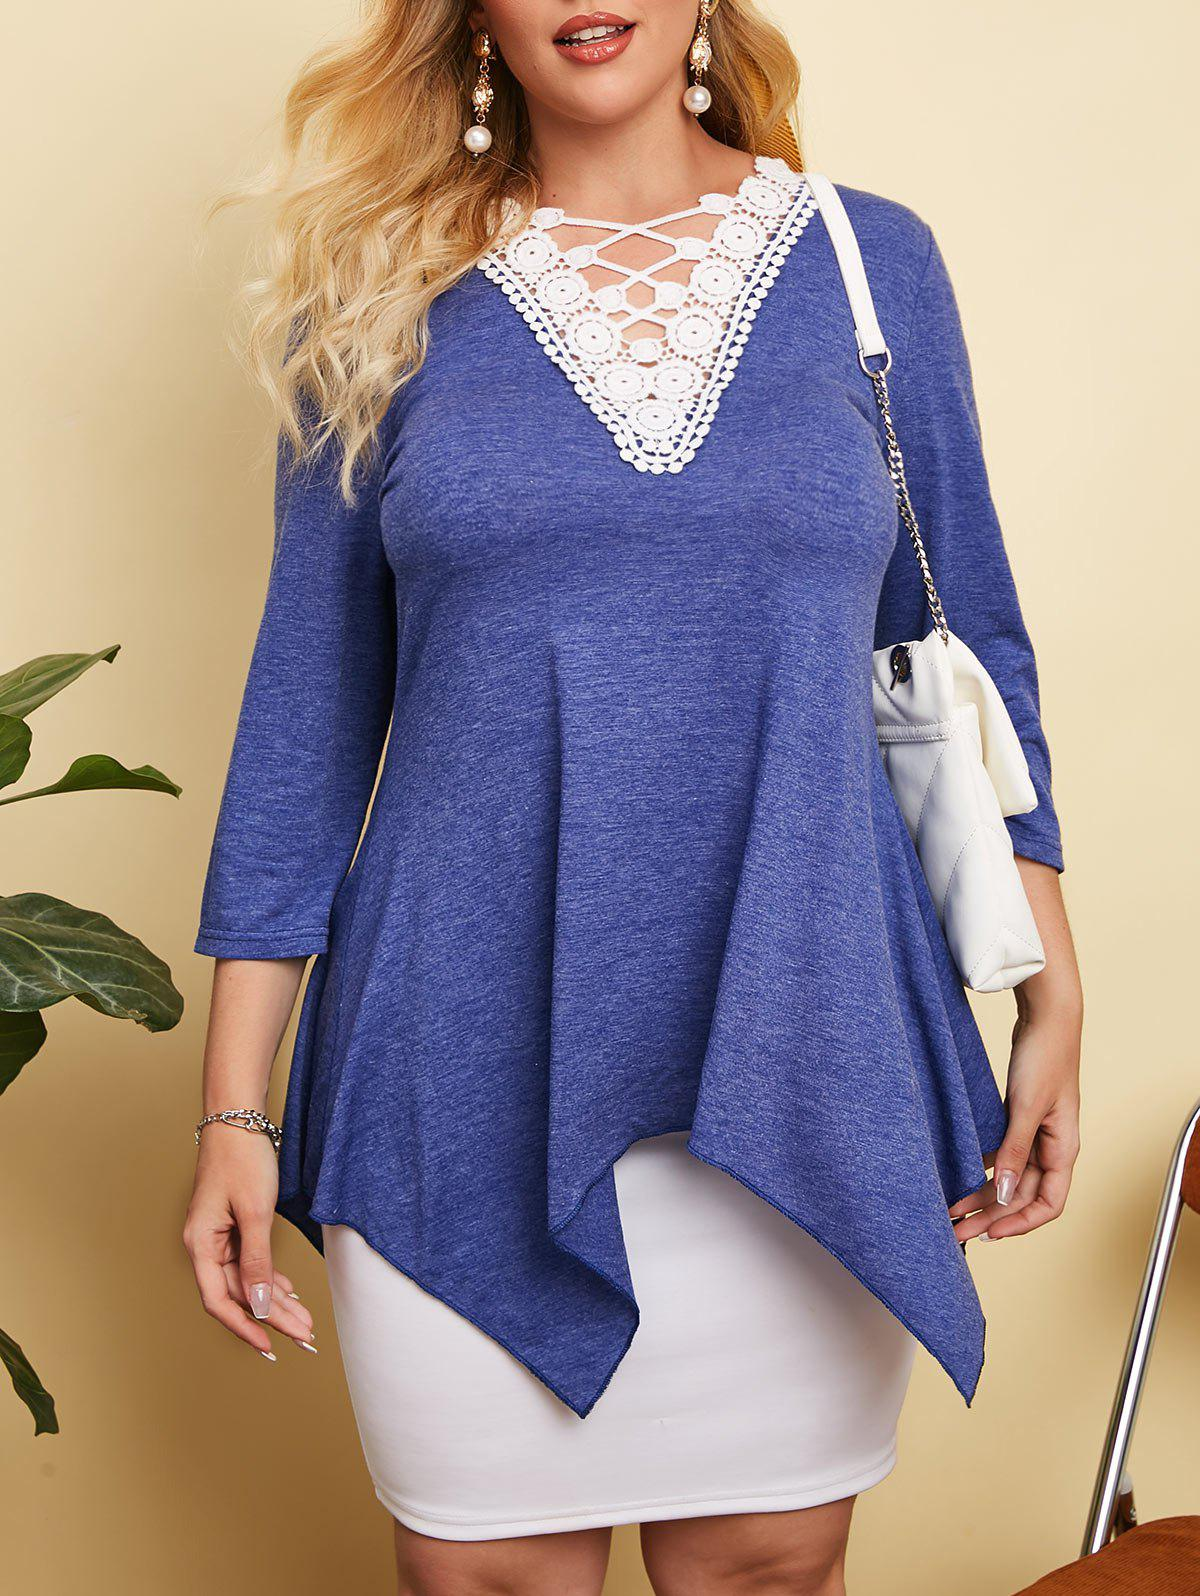 Crochet Lace Panel Heathered Plus Size Top - BLUE 4X